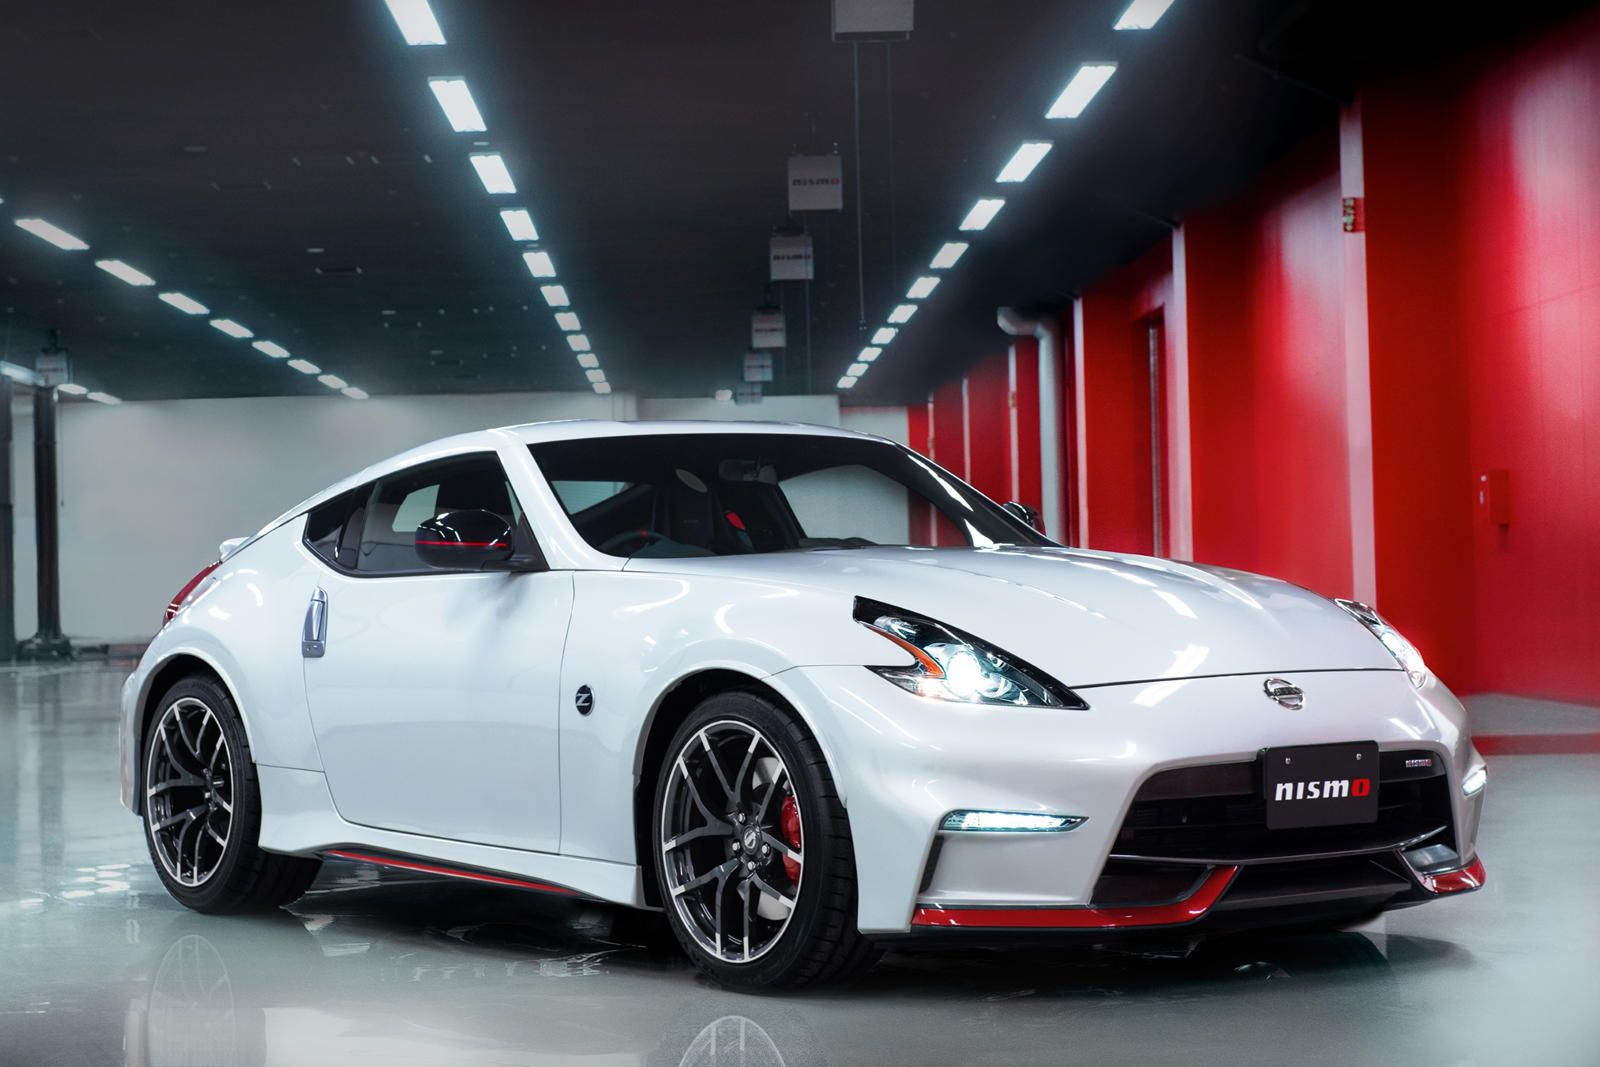 The Nissan 400z Could Be In Trouble Nissan Is Developing A New Z Car That Much Is Certain But Will It In 2020 Nissan 370z Nismo Nissan 370z Nissan 370z Convertible